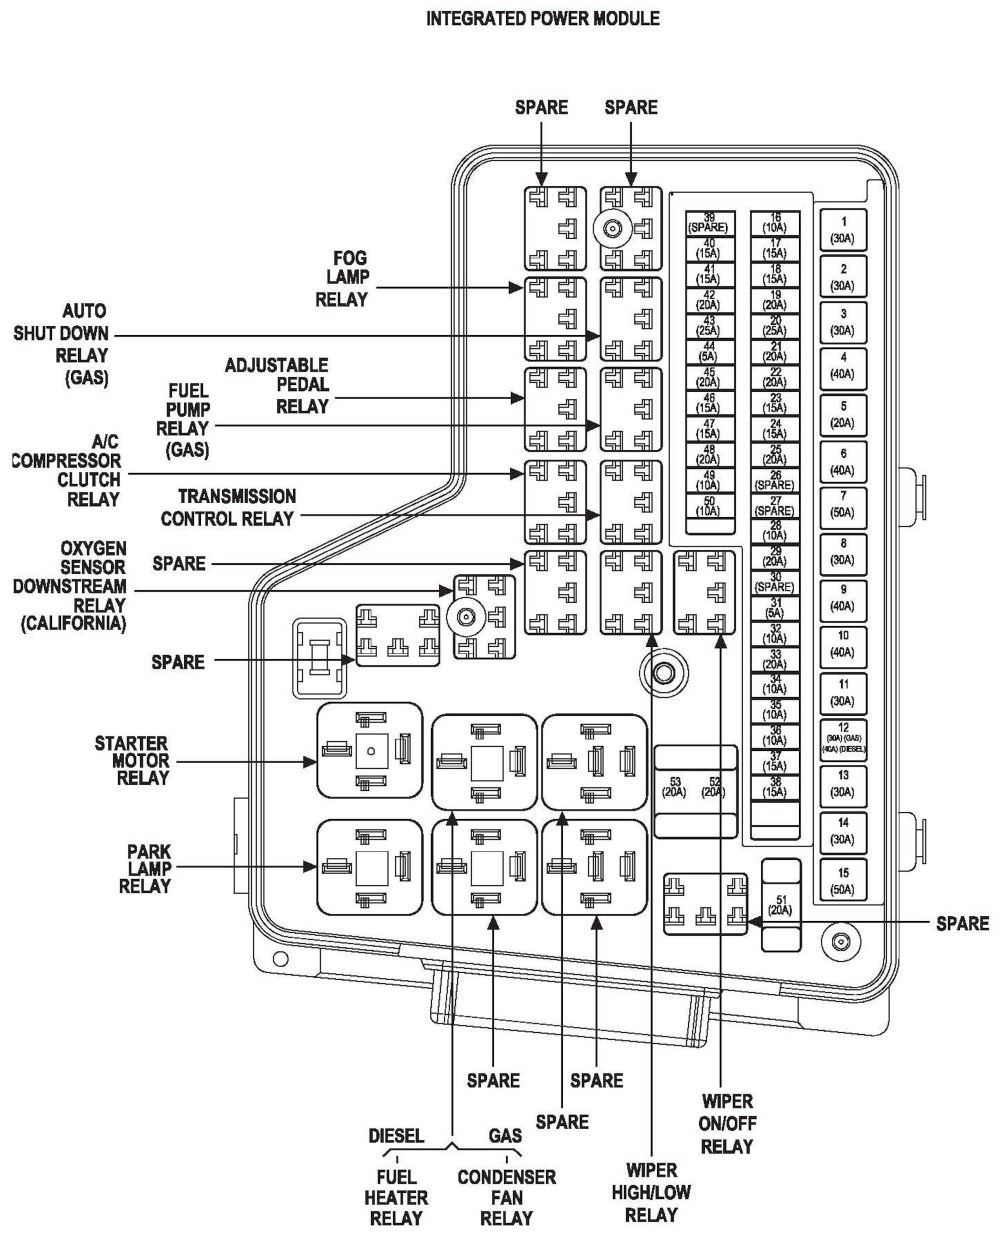 medium resolution of 2009 dodge ram 1500 fuse diagram wiring diagram used 2009 dodge 1500 fuse box 2009 dodge